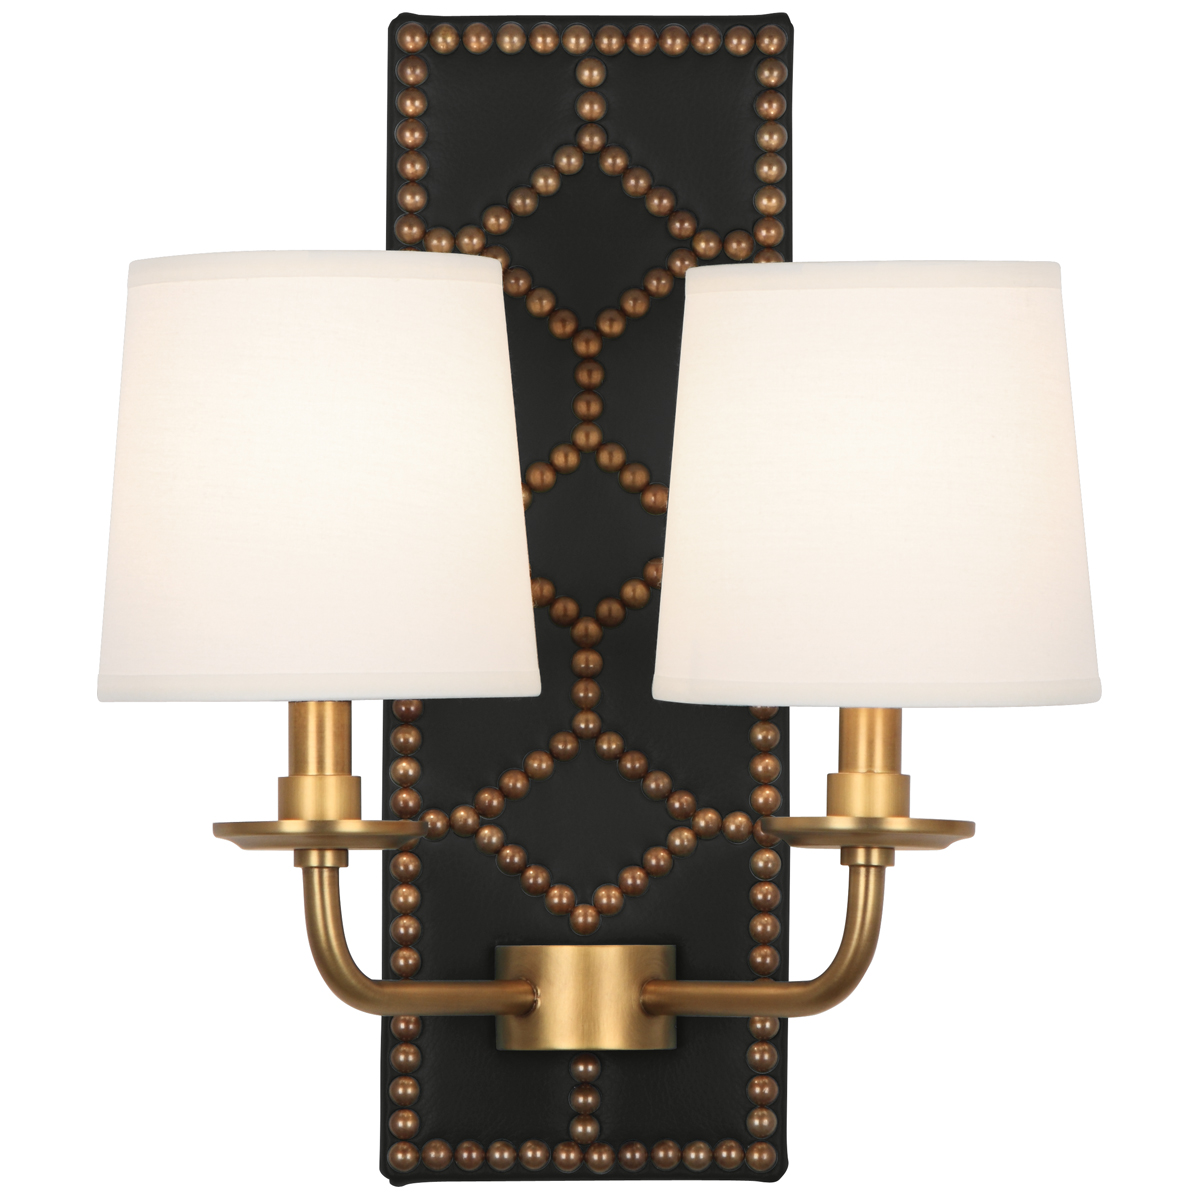 Williamsburg Lightfoot Wall Sconce Style #1035